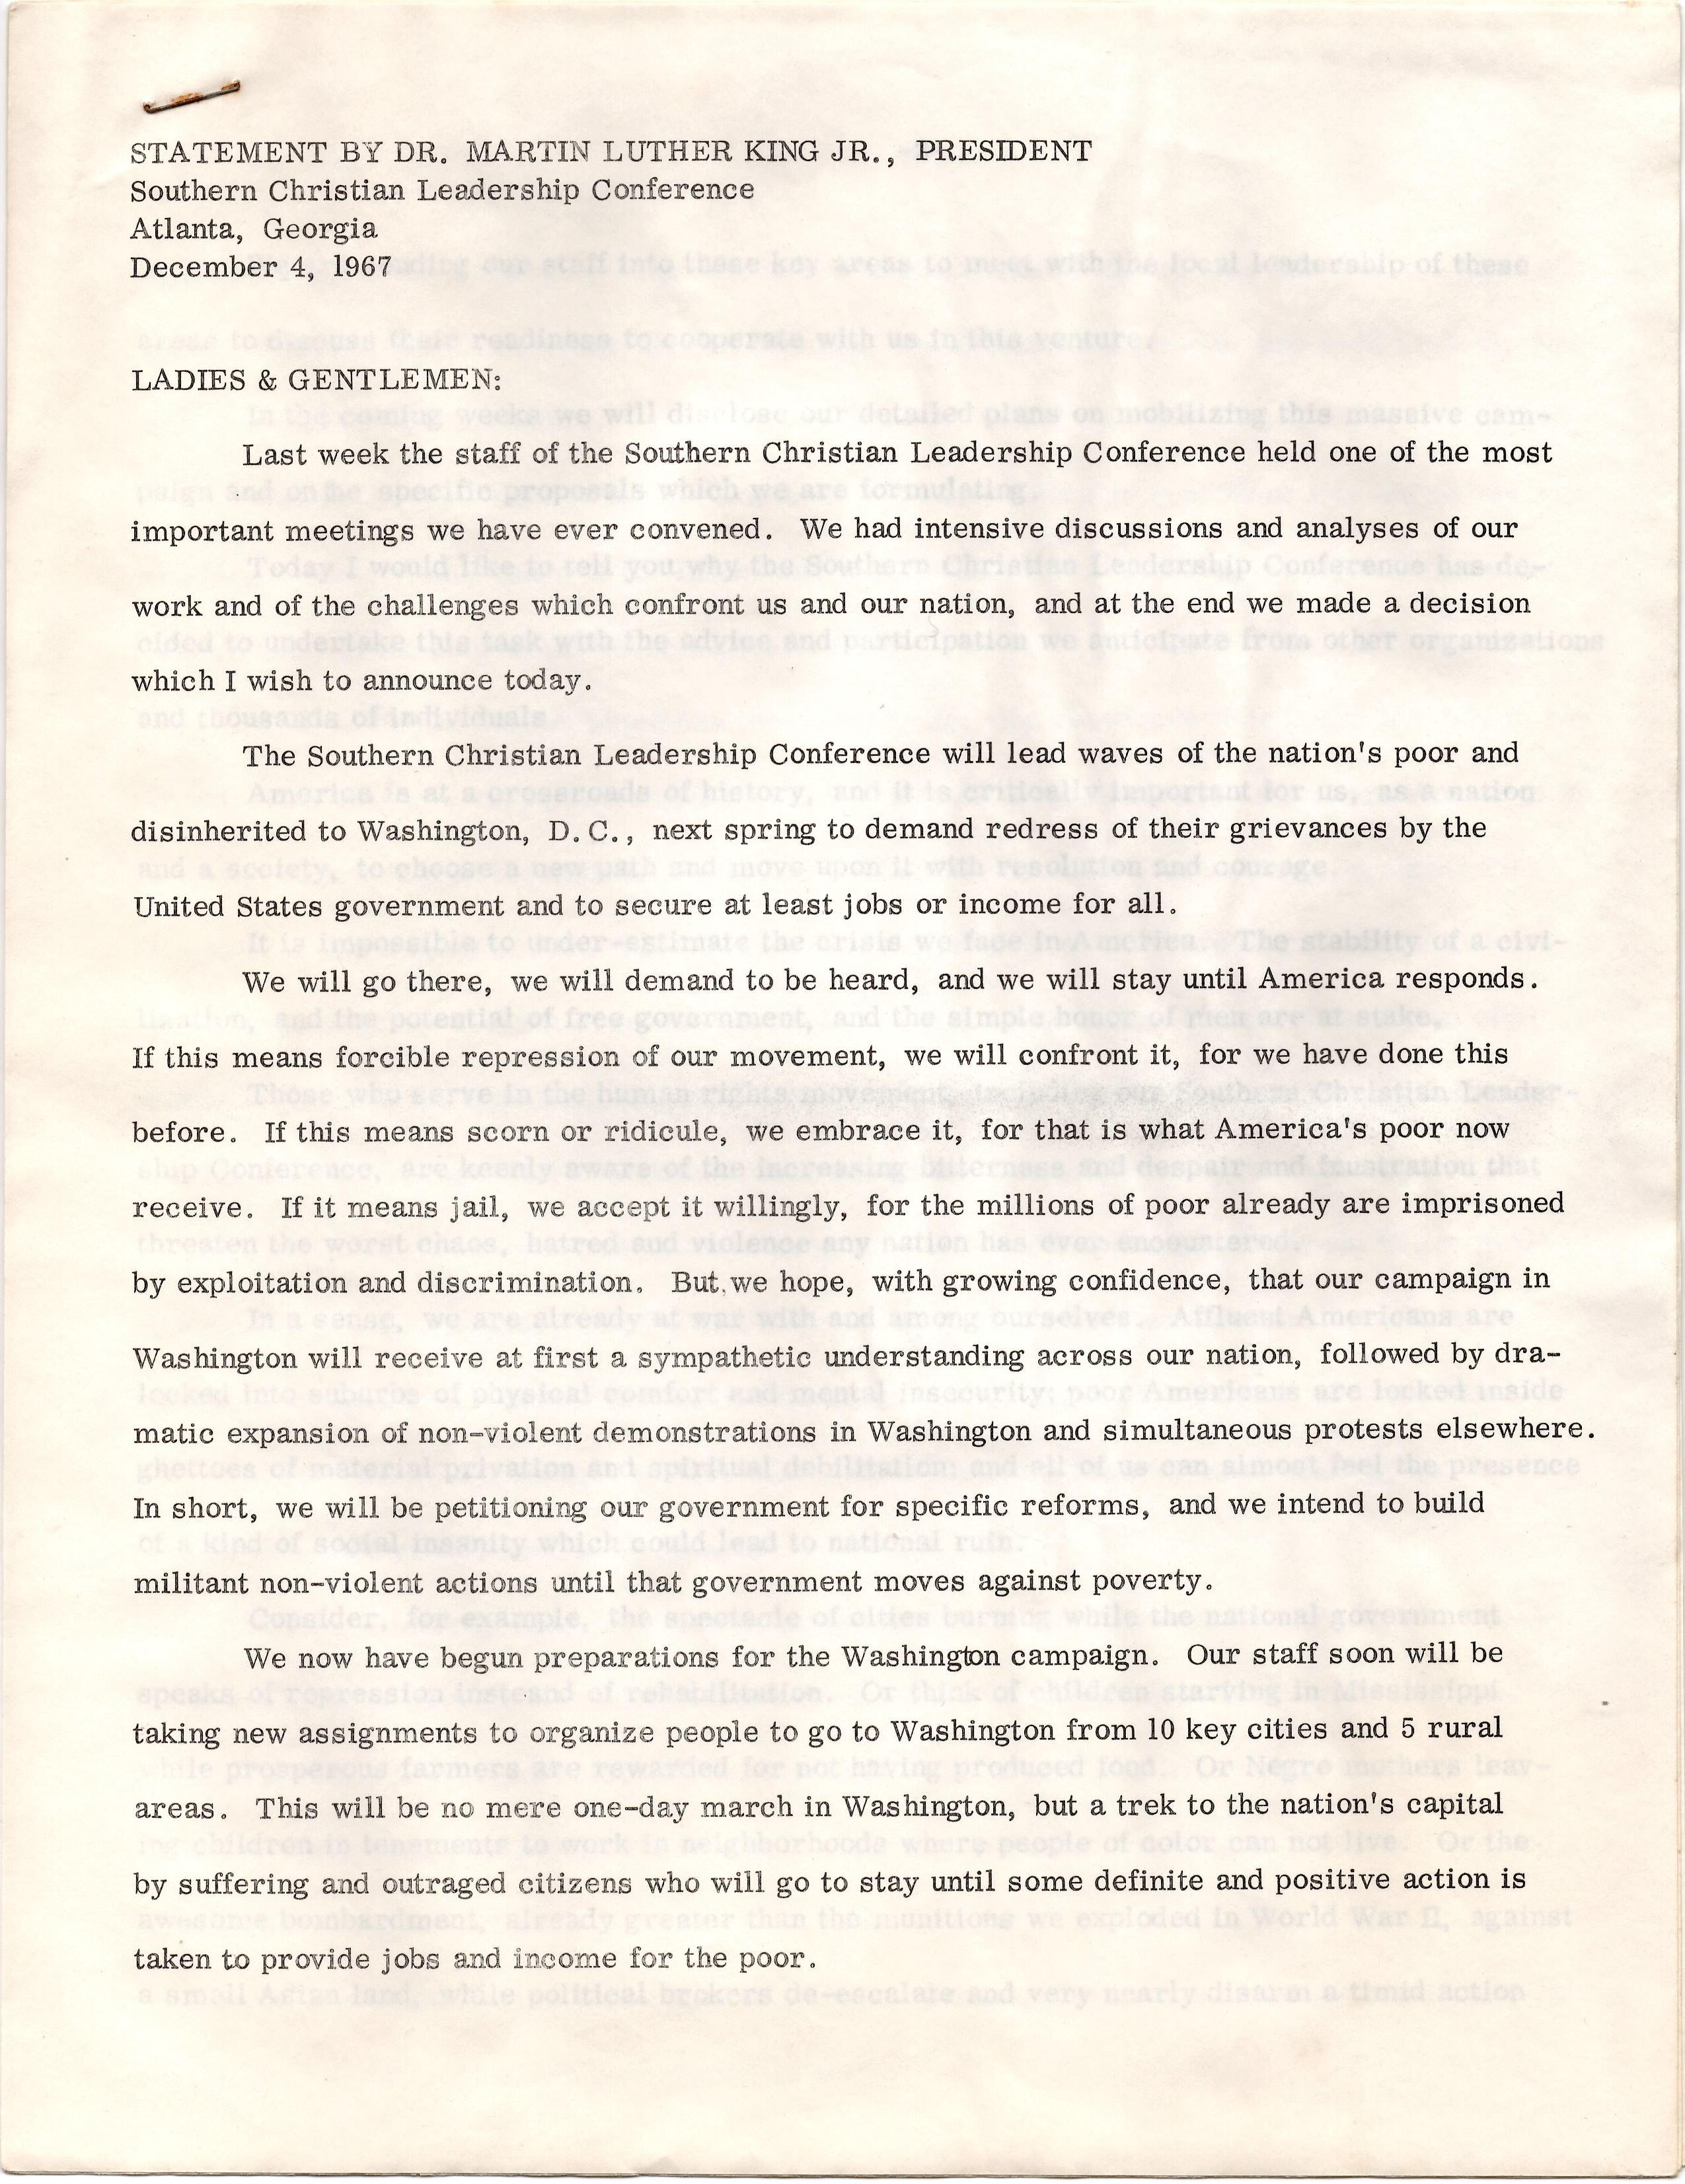 Statement by Dr. ML King, Announcing the 1968 March on Washington